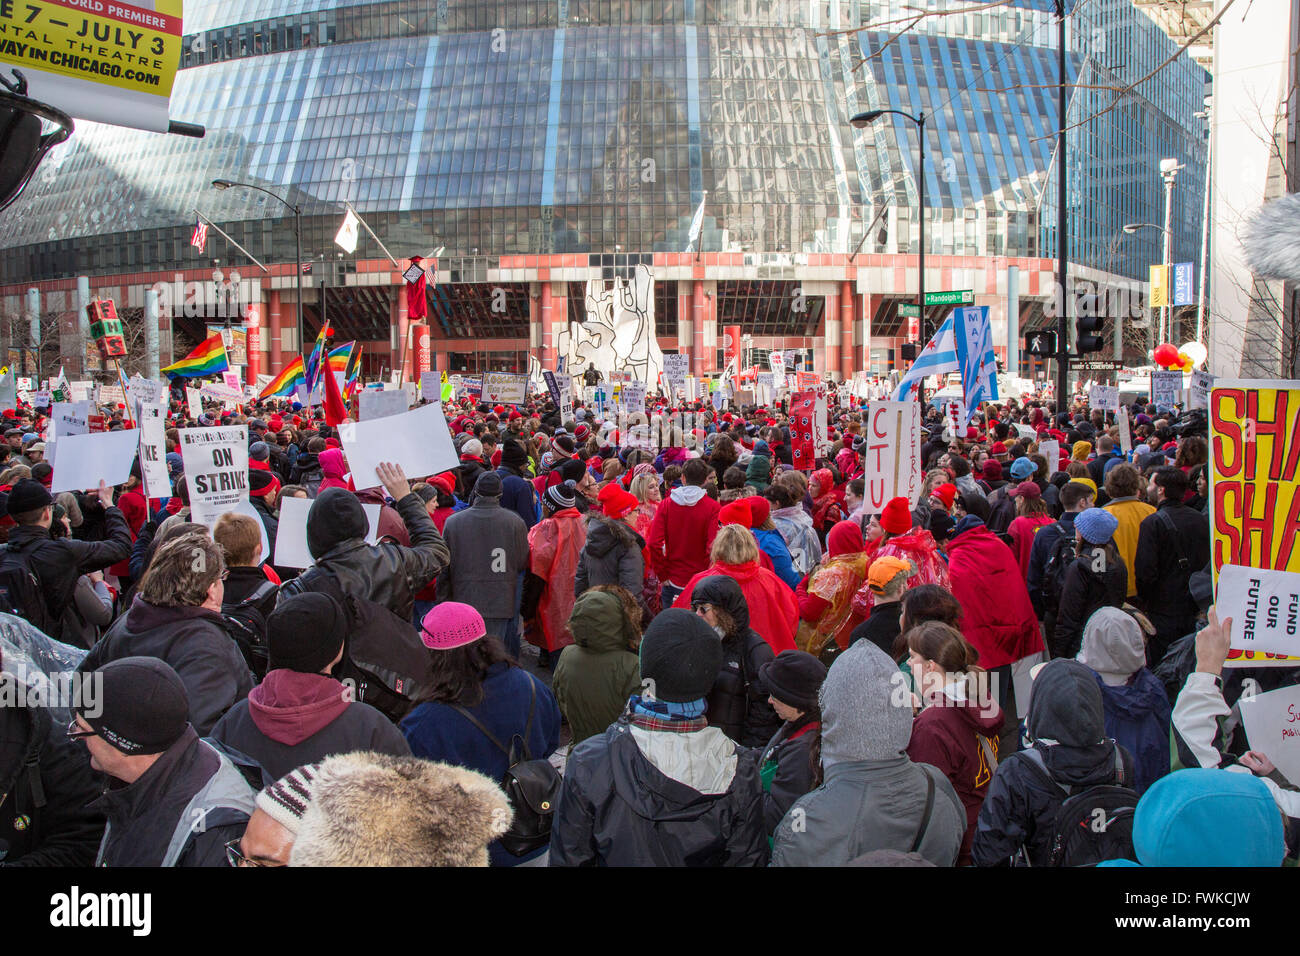 Chicago, Illinois - Members of the Chicago Teachers Union strike for increased funding for the city's public - Stock Image